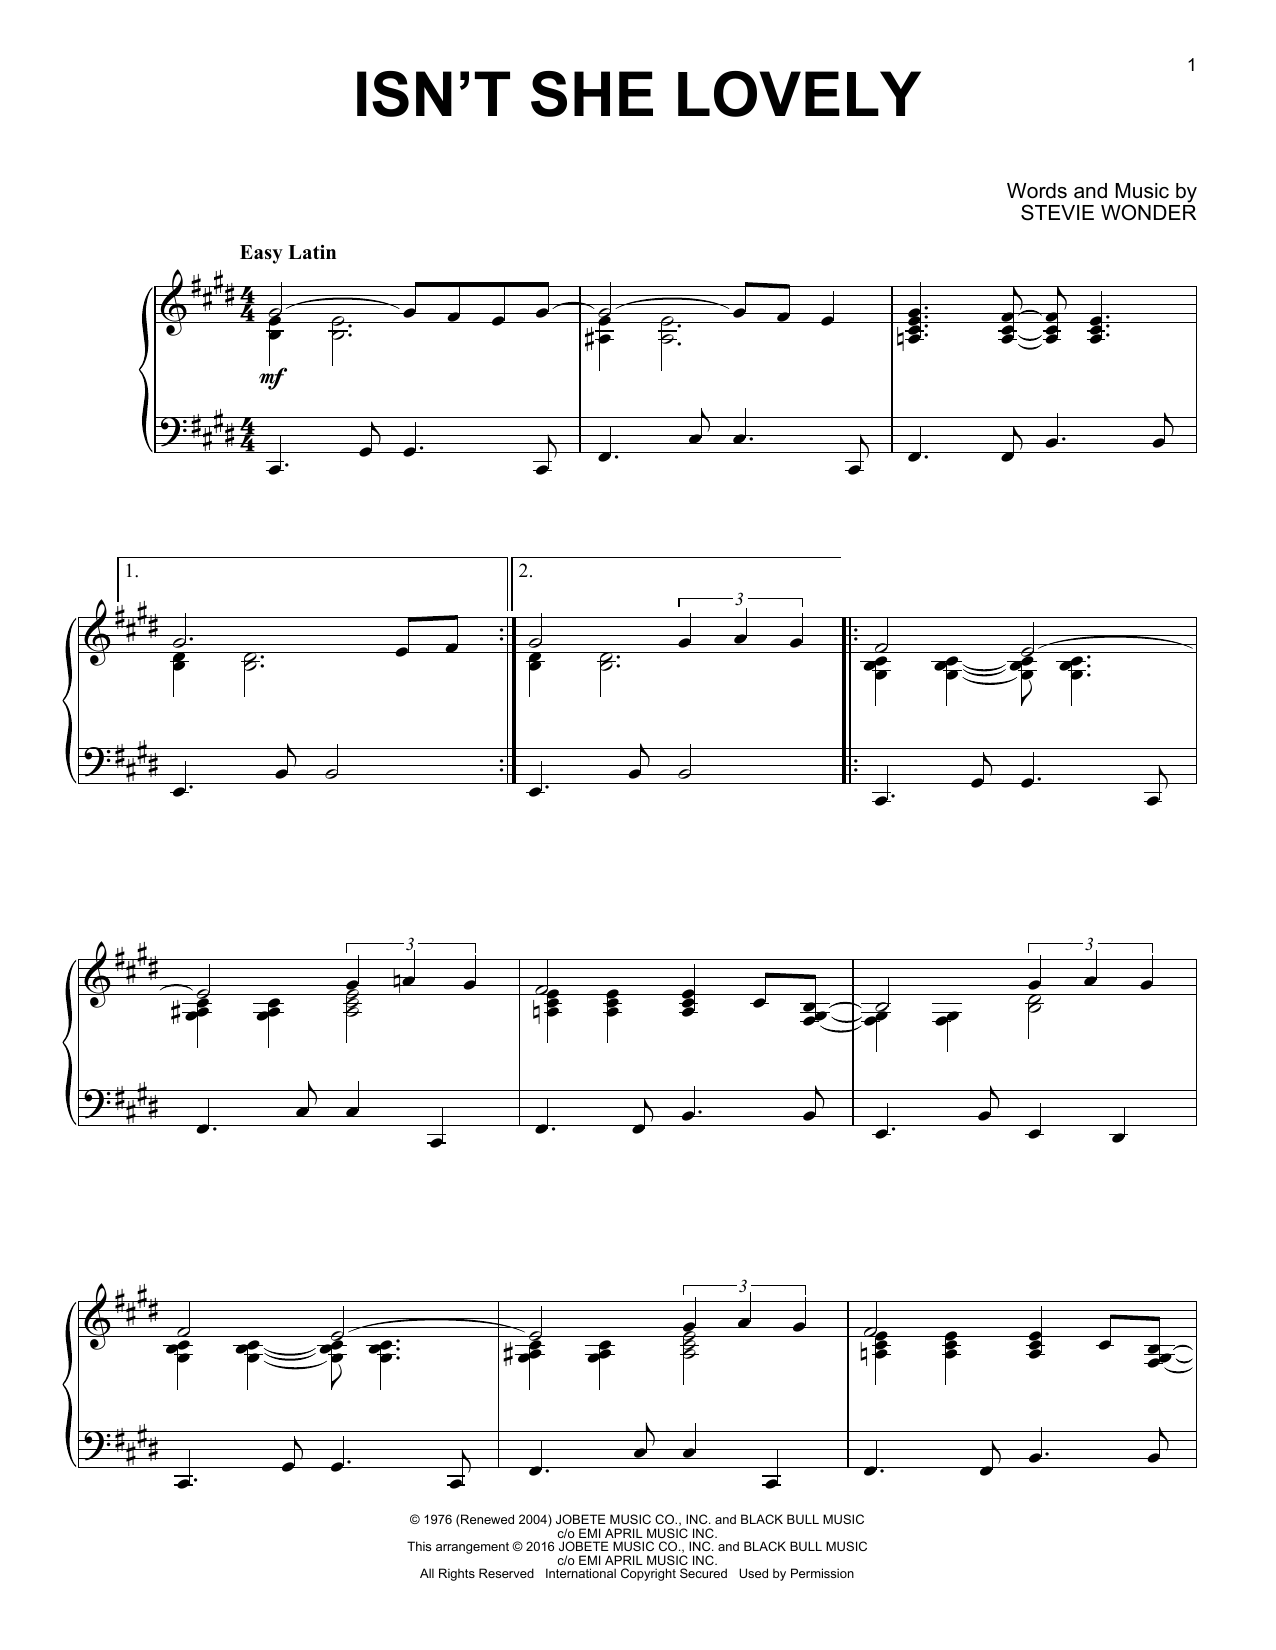 Stevie Wonder Isn't She Lovely [Jazz version] sheet music notes and chords. Download Printable PDF.